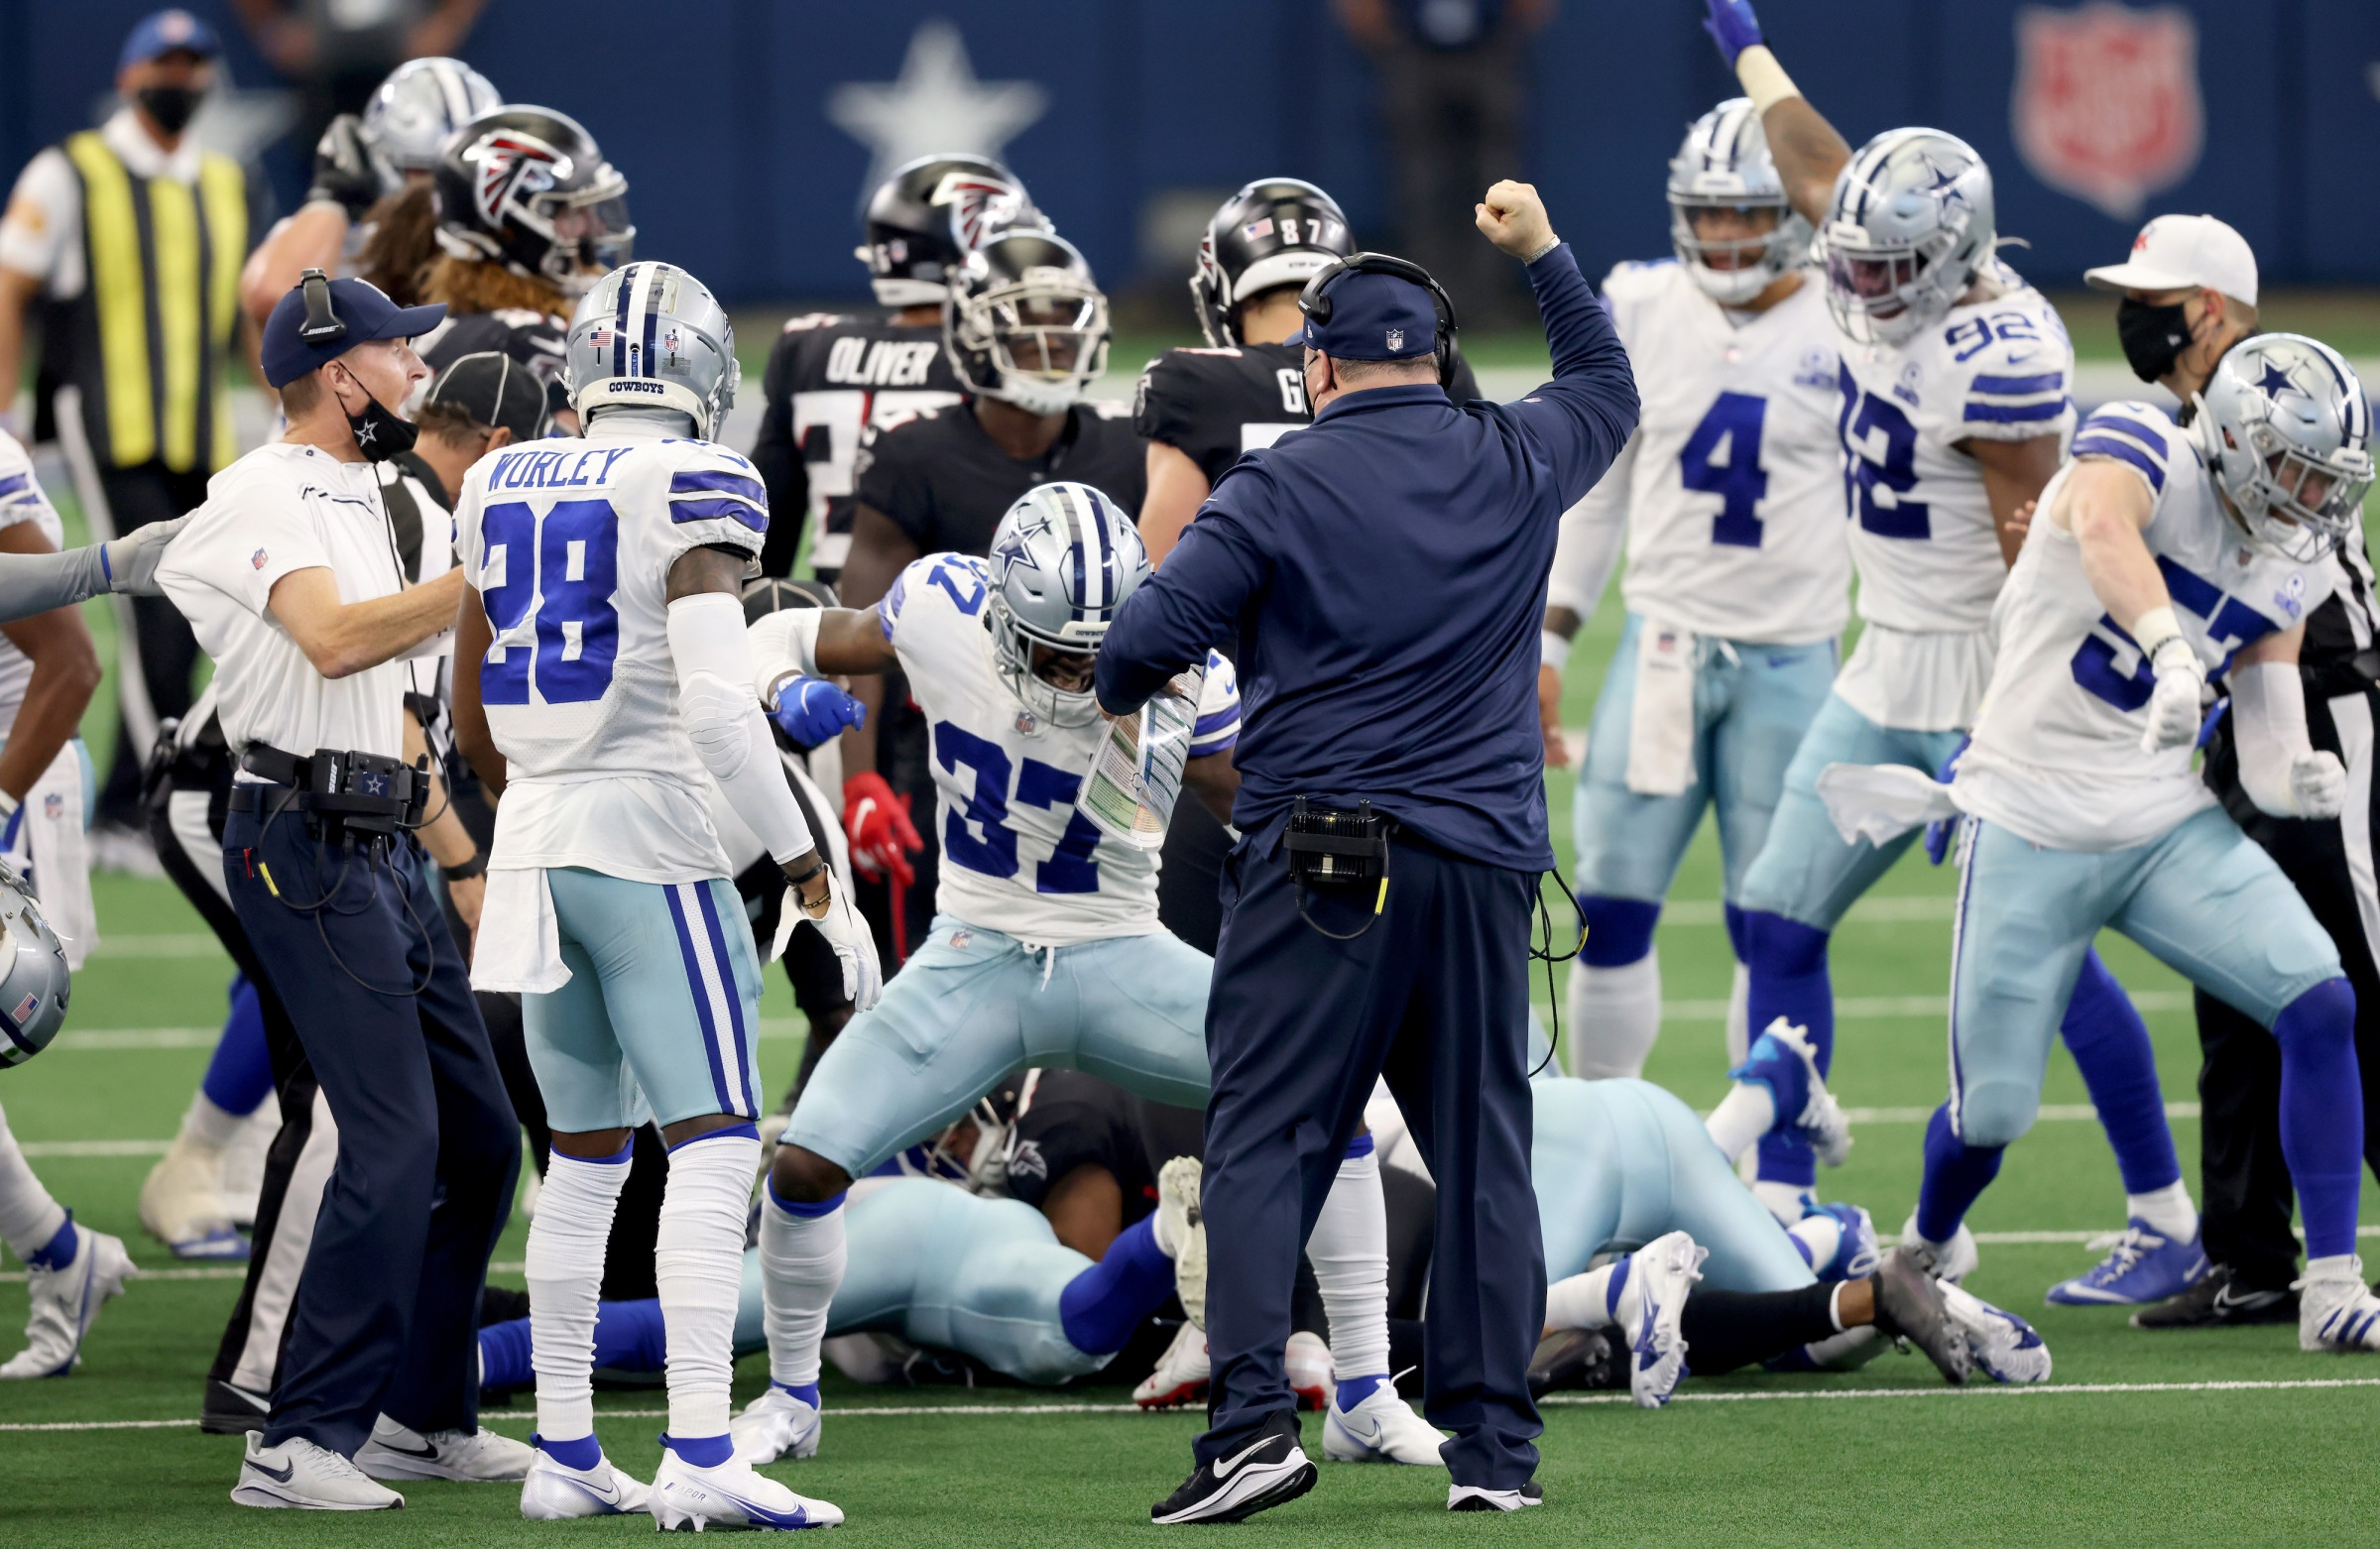 Dallas Cowboys players react to onside kick recovery